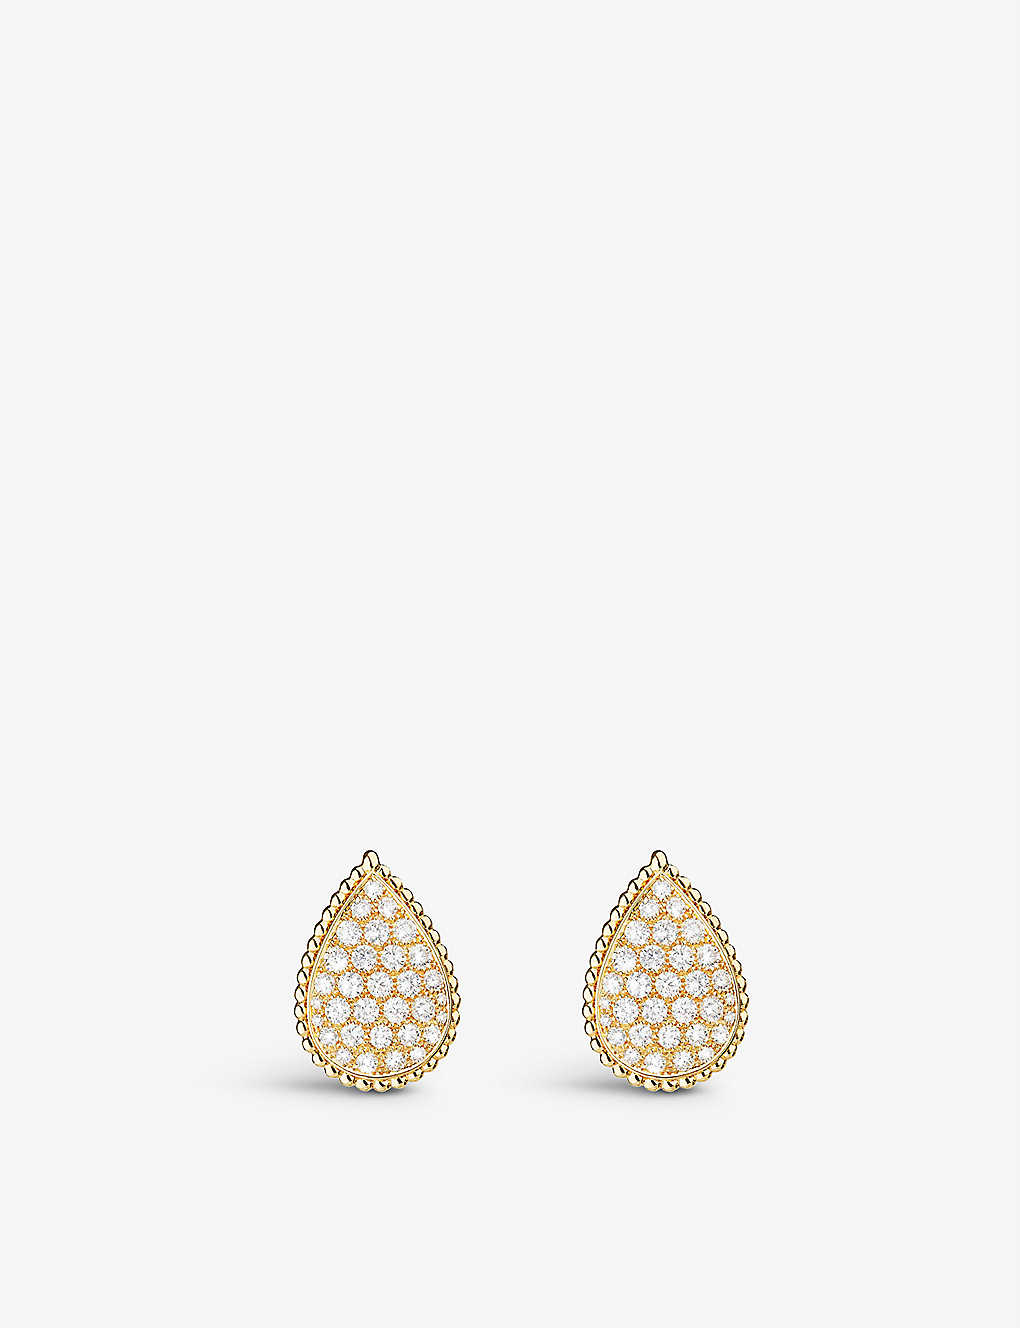 BOUCHERON: Serpent Bohème 18ct yellow-gold and diamond earrings